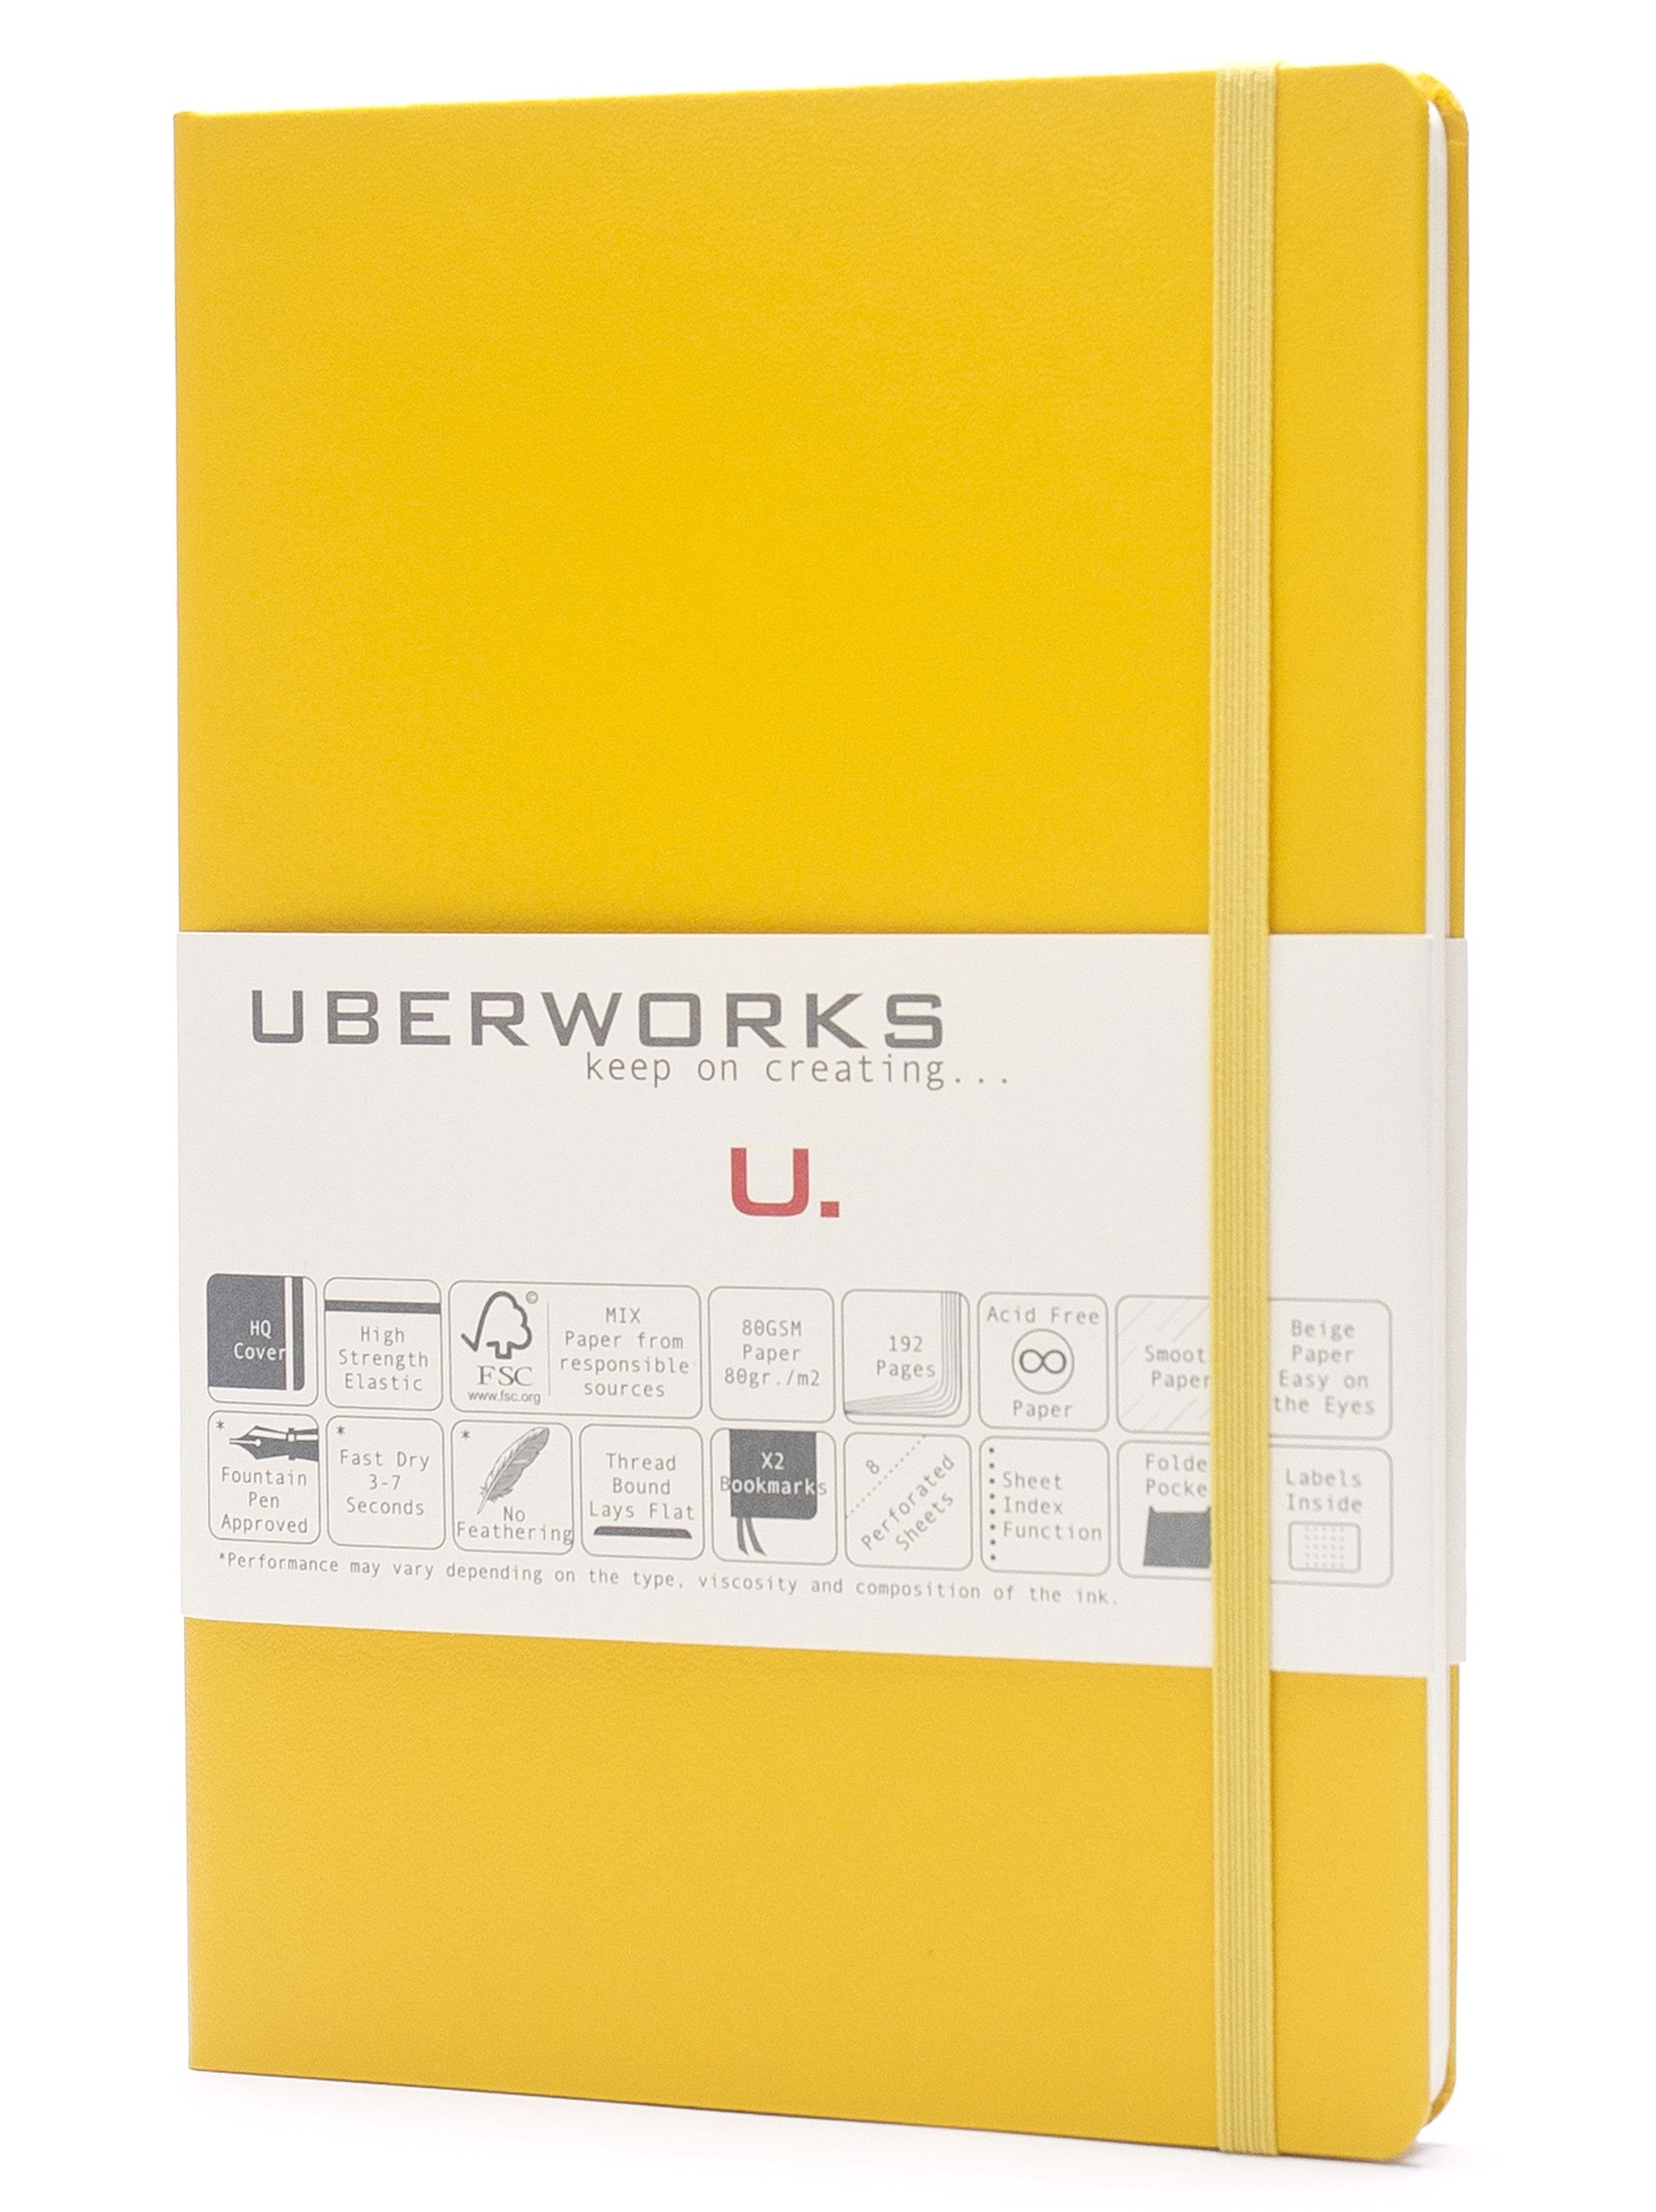 UBERWORKS Tehnik Classic Hardcover Dotted Notebook | Stay Organized | Premium Writing All Purpose, Bullet Journal, Planner, Organizer, BuJo | 192 A5 Dot-grid Pages with Back Folder, Labels | Yellow